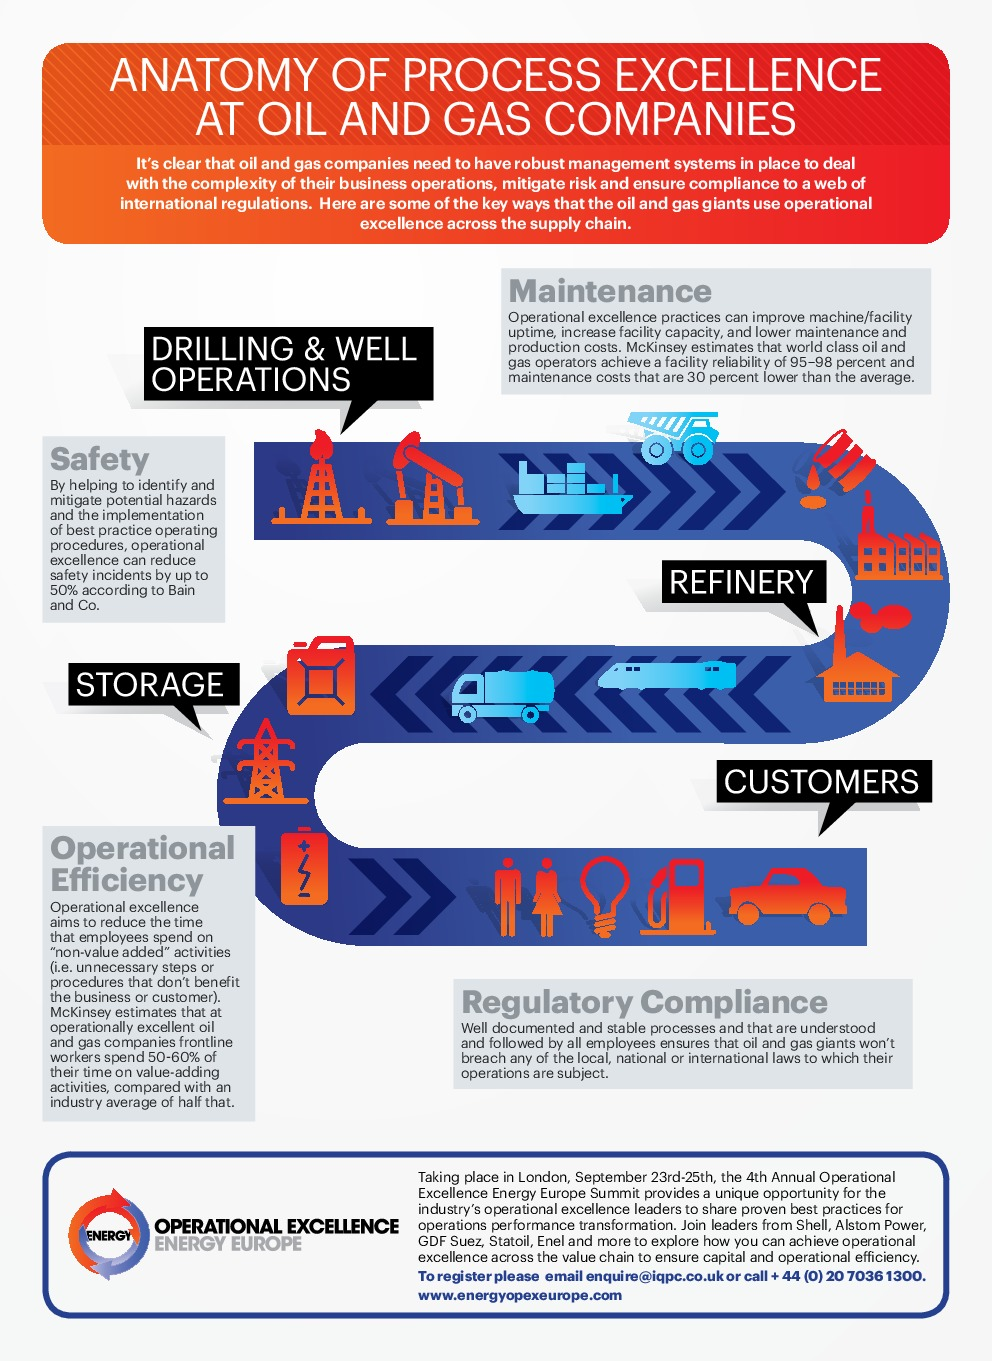 INFOGRAPHIC] Operational Excellence In Oil & Gas | Oil & Gas IQ